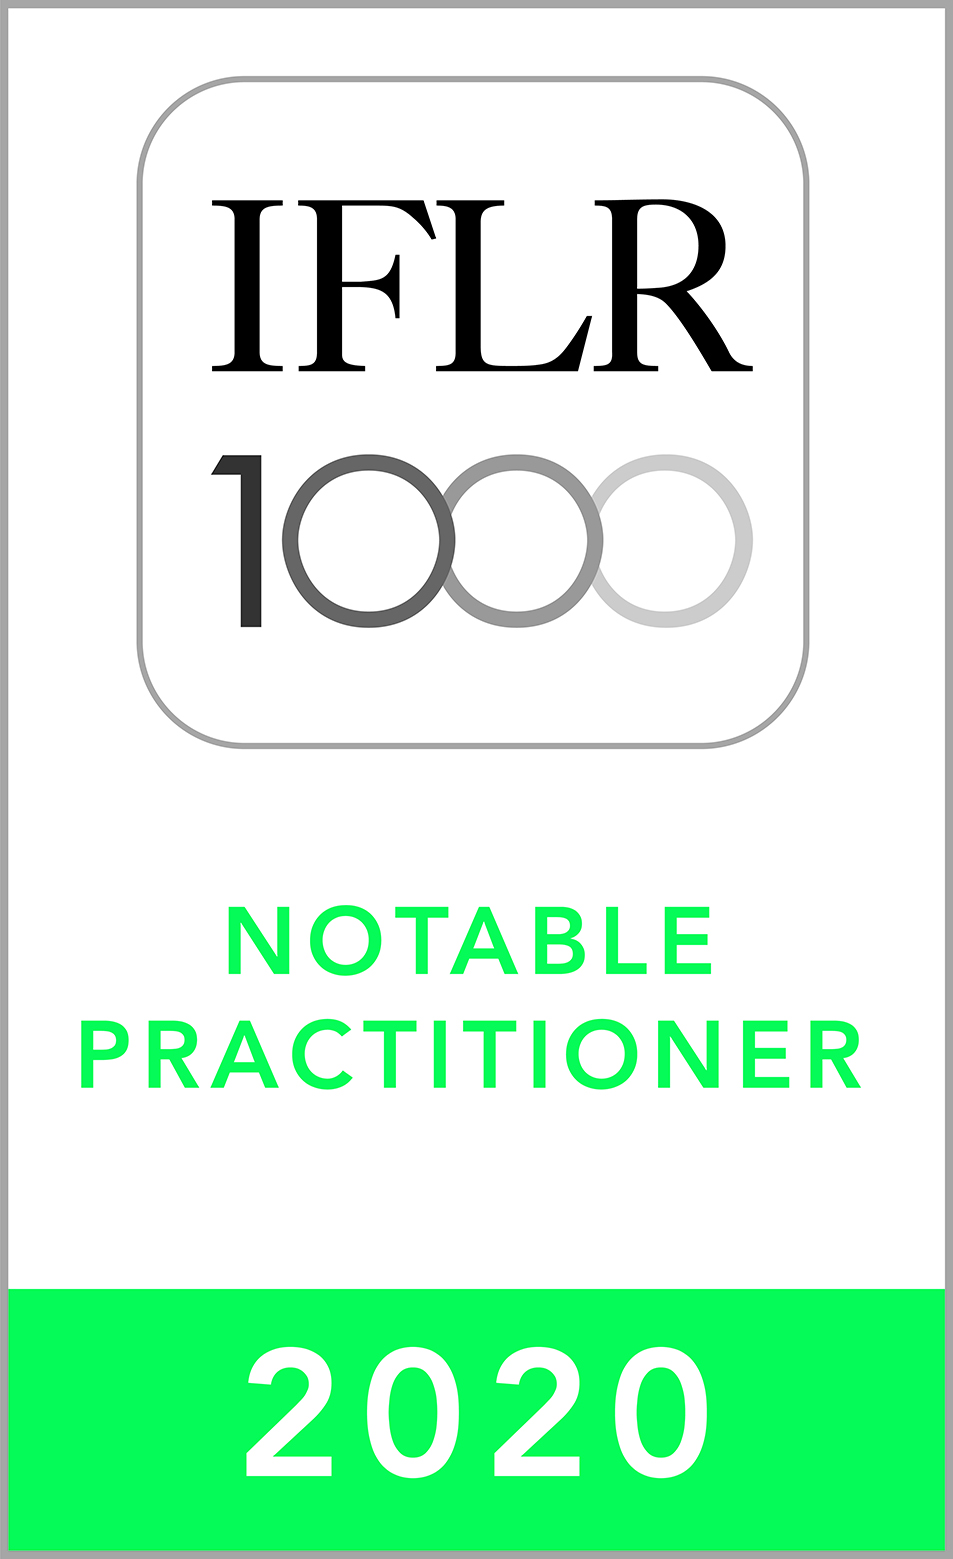 Notable Practitioner in Financial & Corporate Law by IFLR1000, 2020